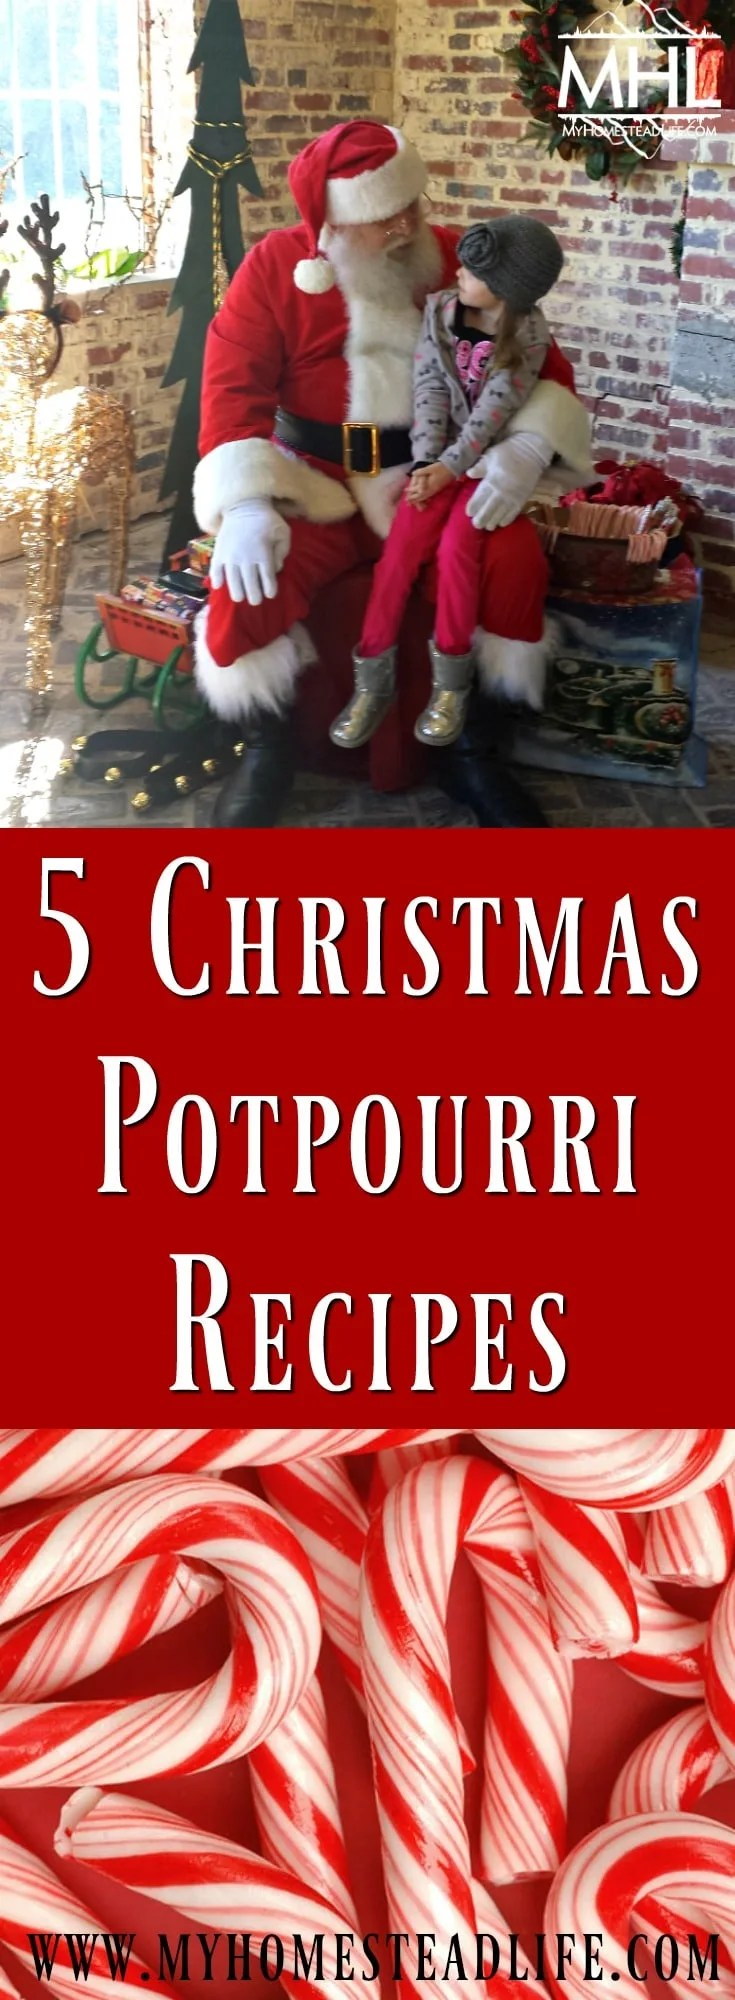 5 Christmas Potpourri Recipes- the wonderful smell of Christmas without all the work